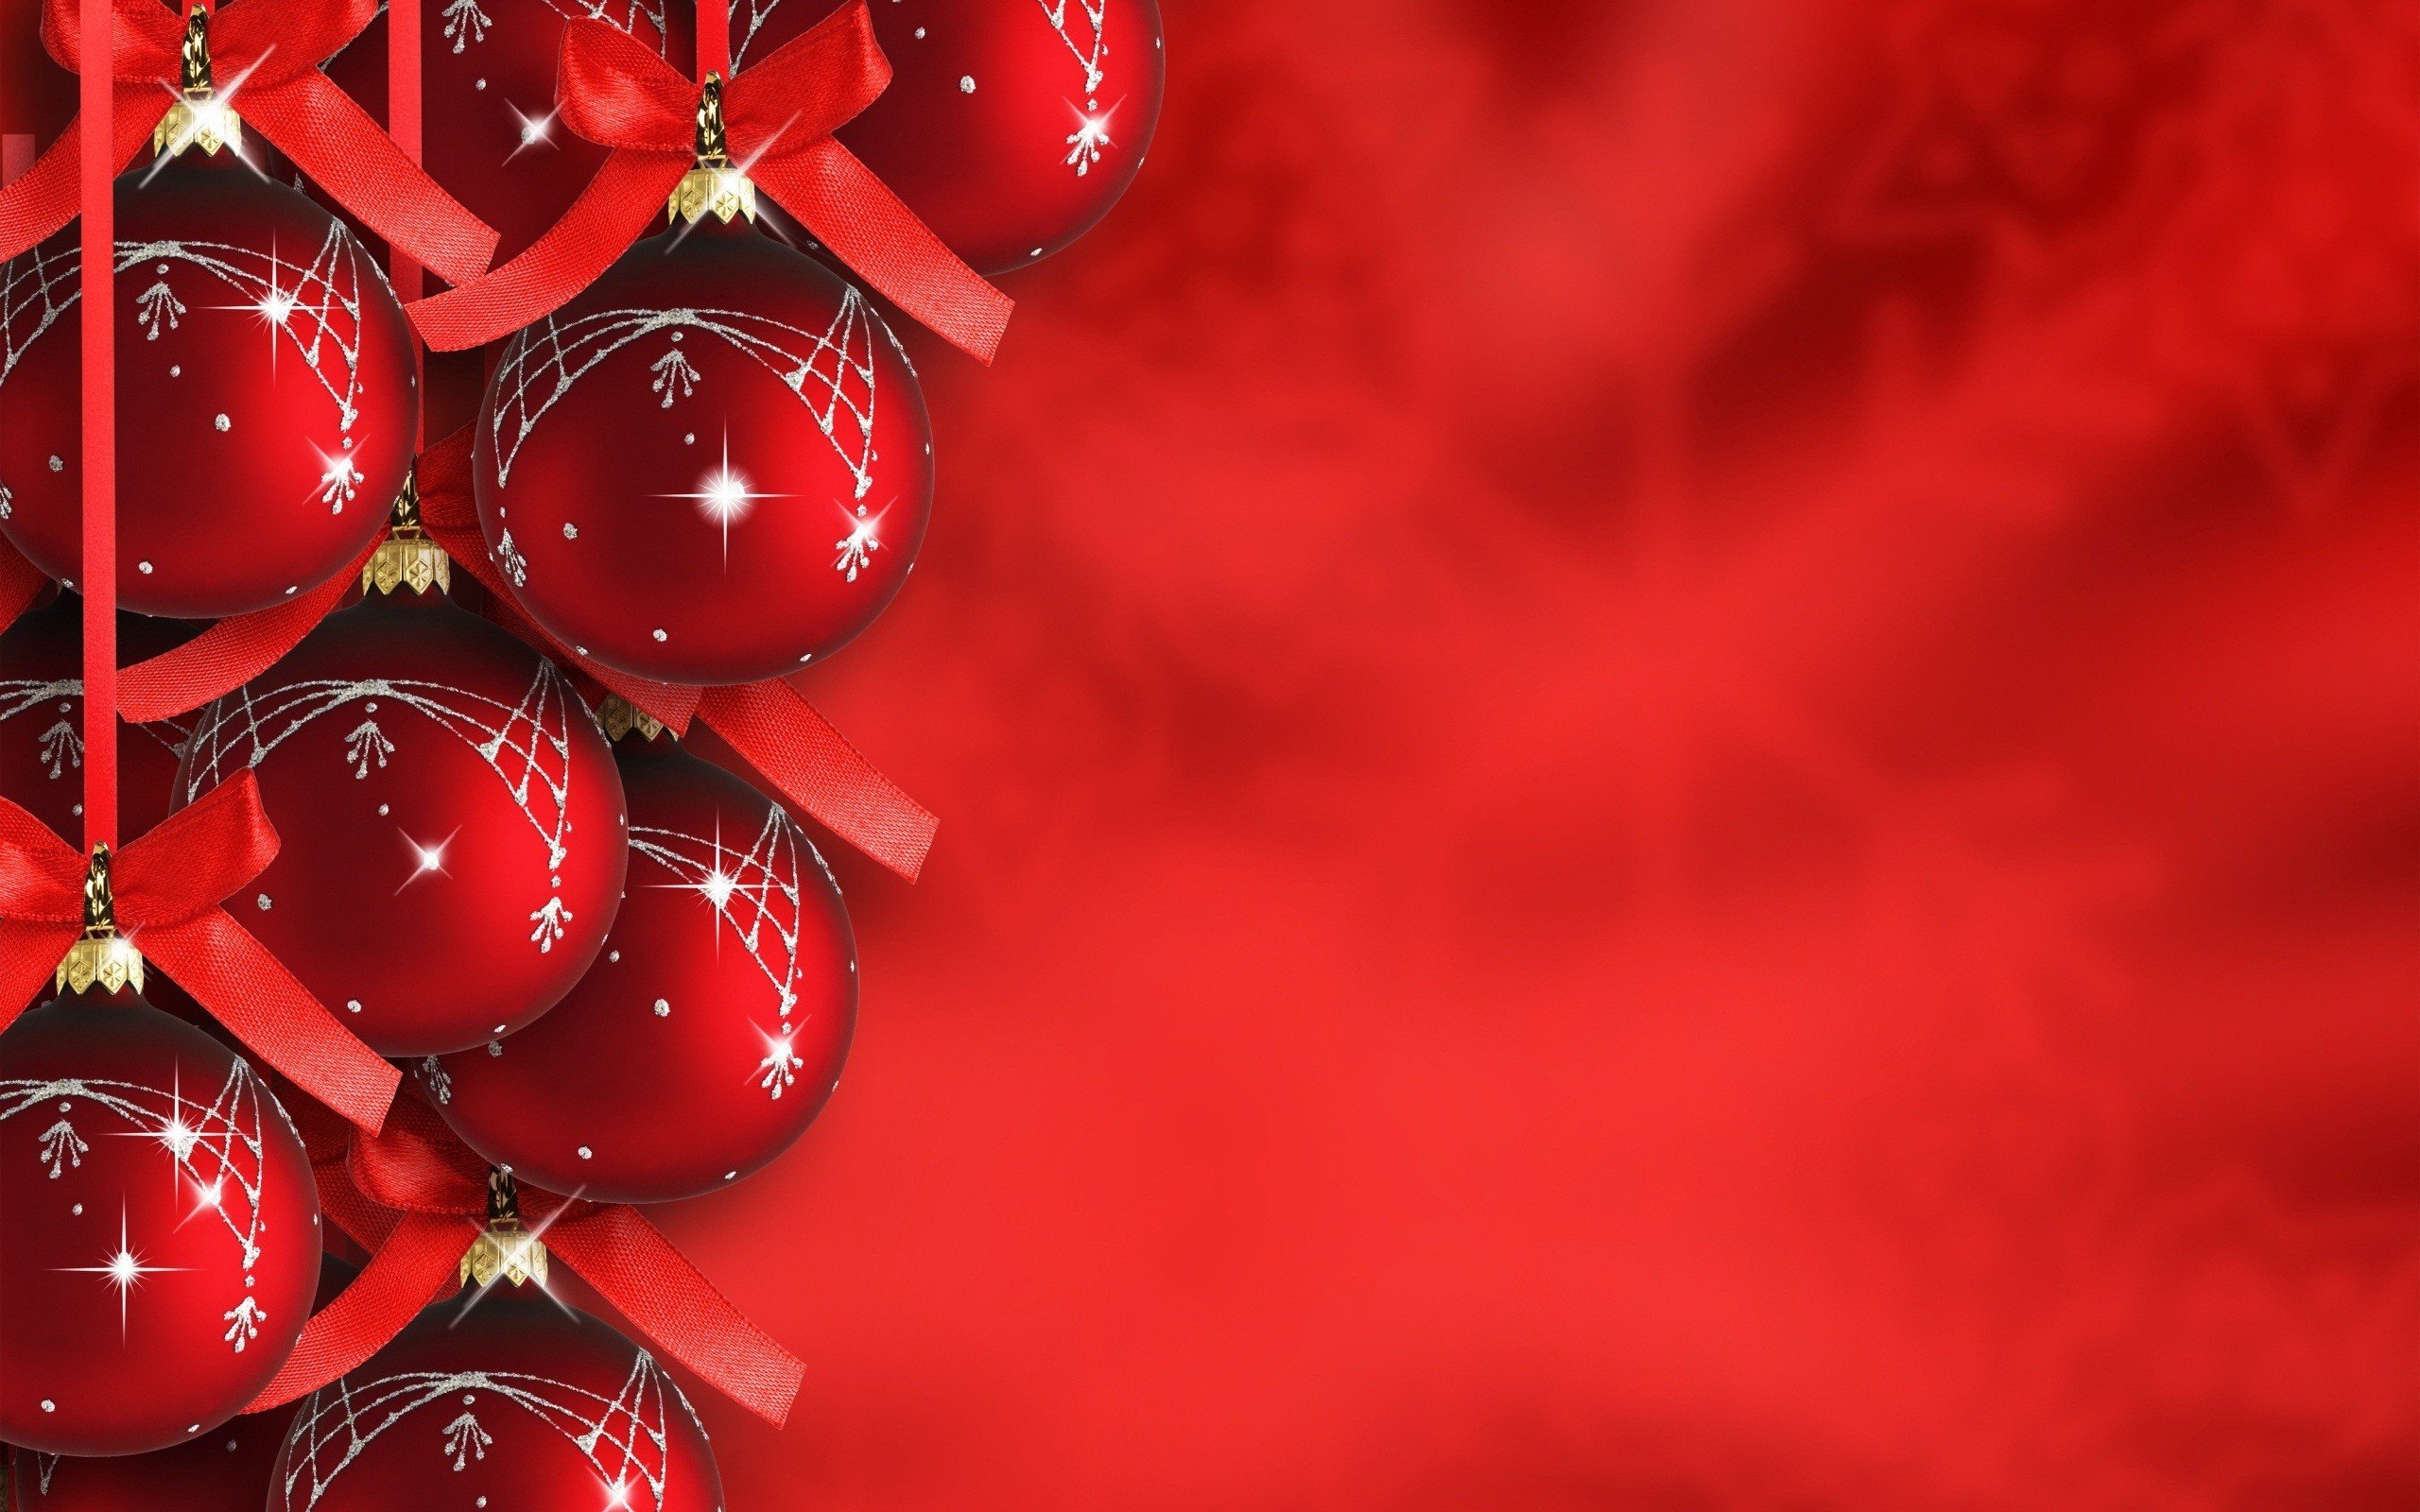 3000x1980 xmas stuff for christmas tree and fireplace background